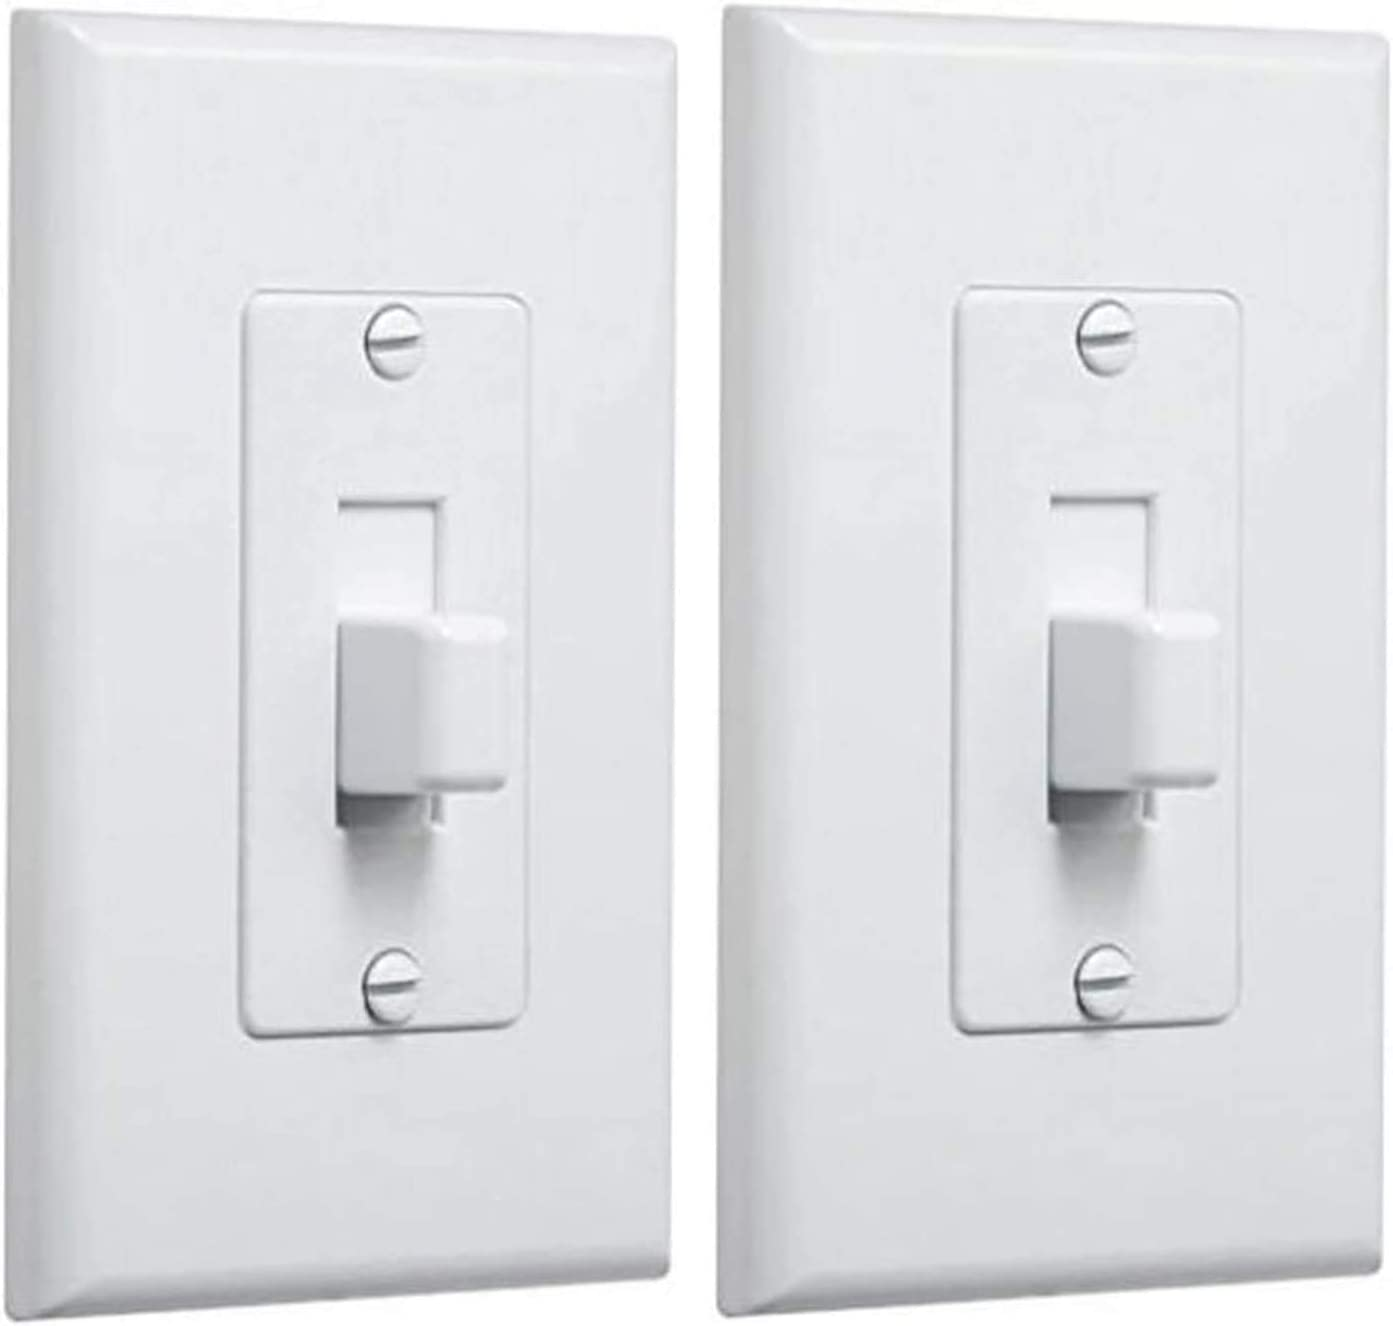 Taymac 2570w Decorator Wall Plate For Toggle Switch White